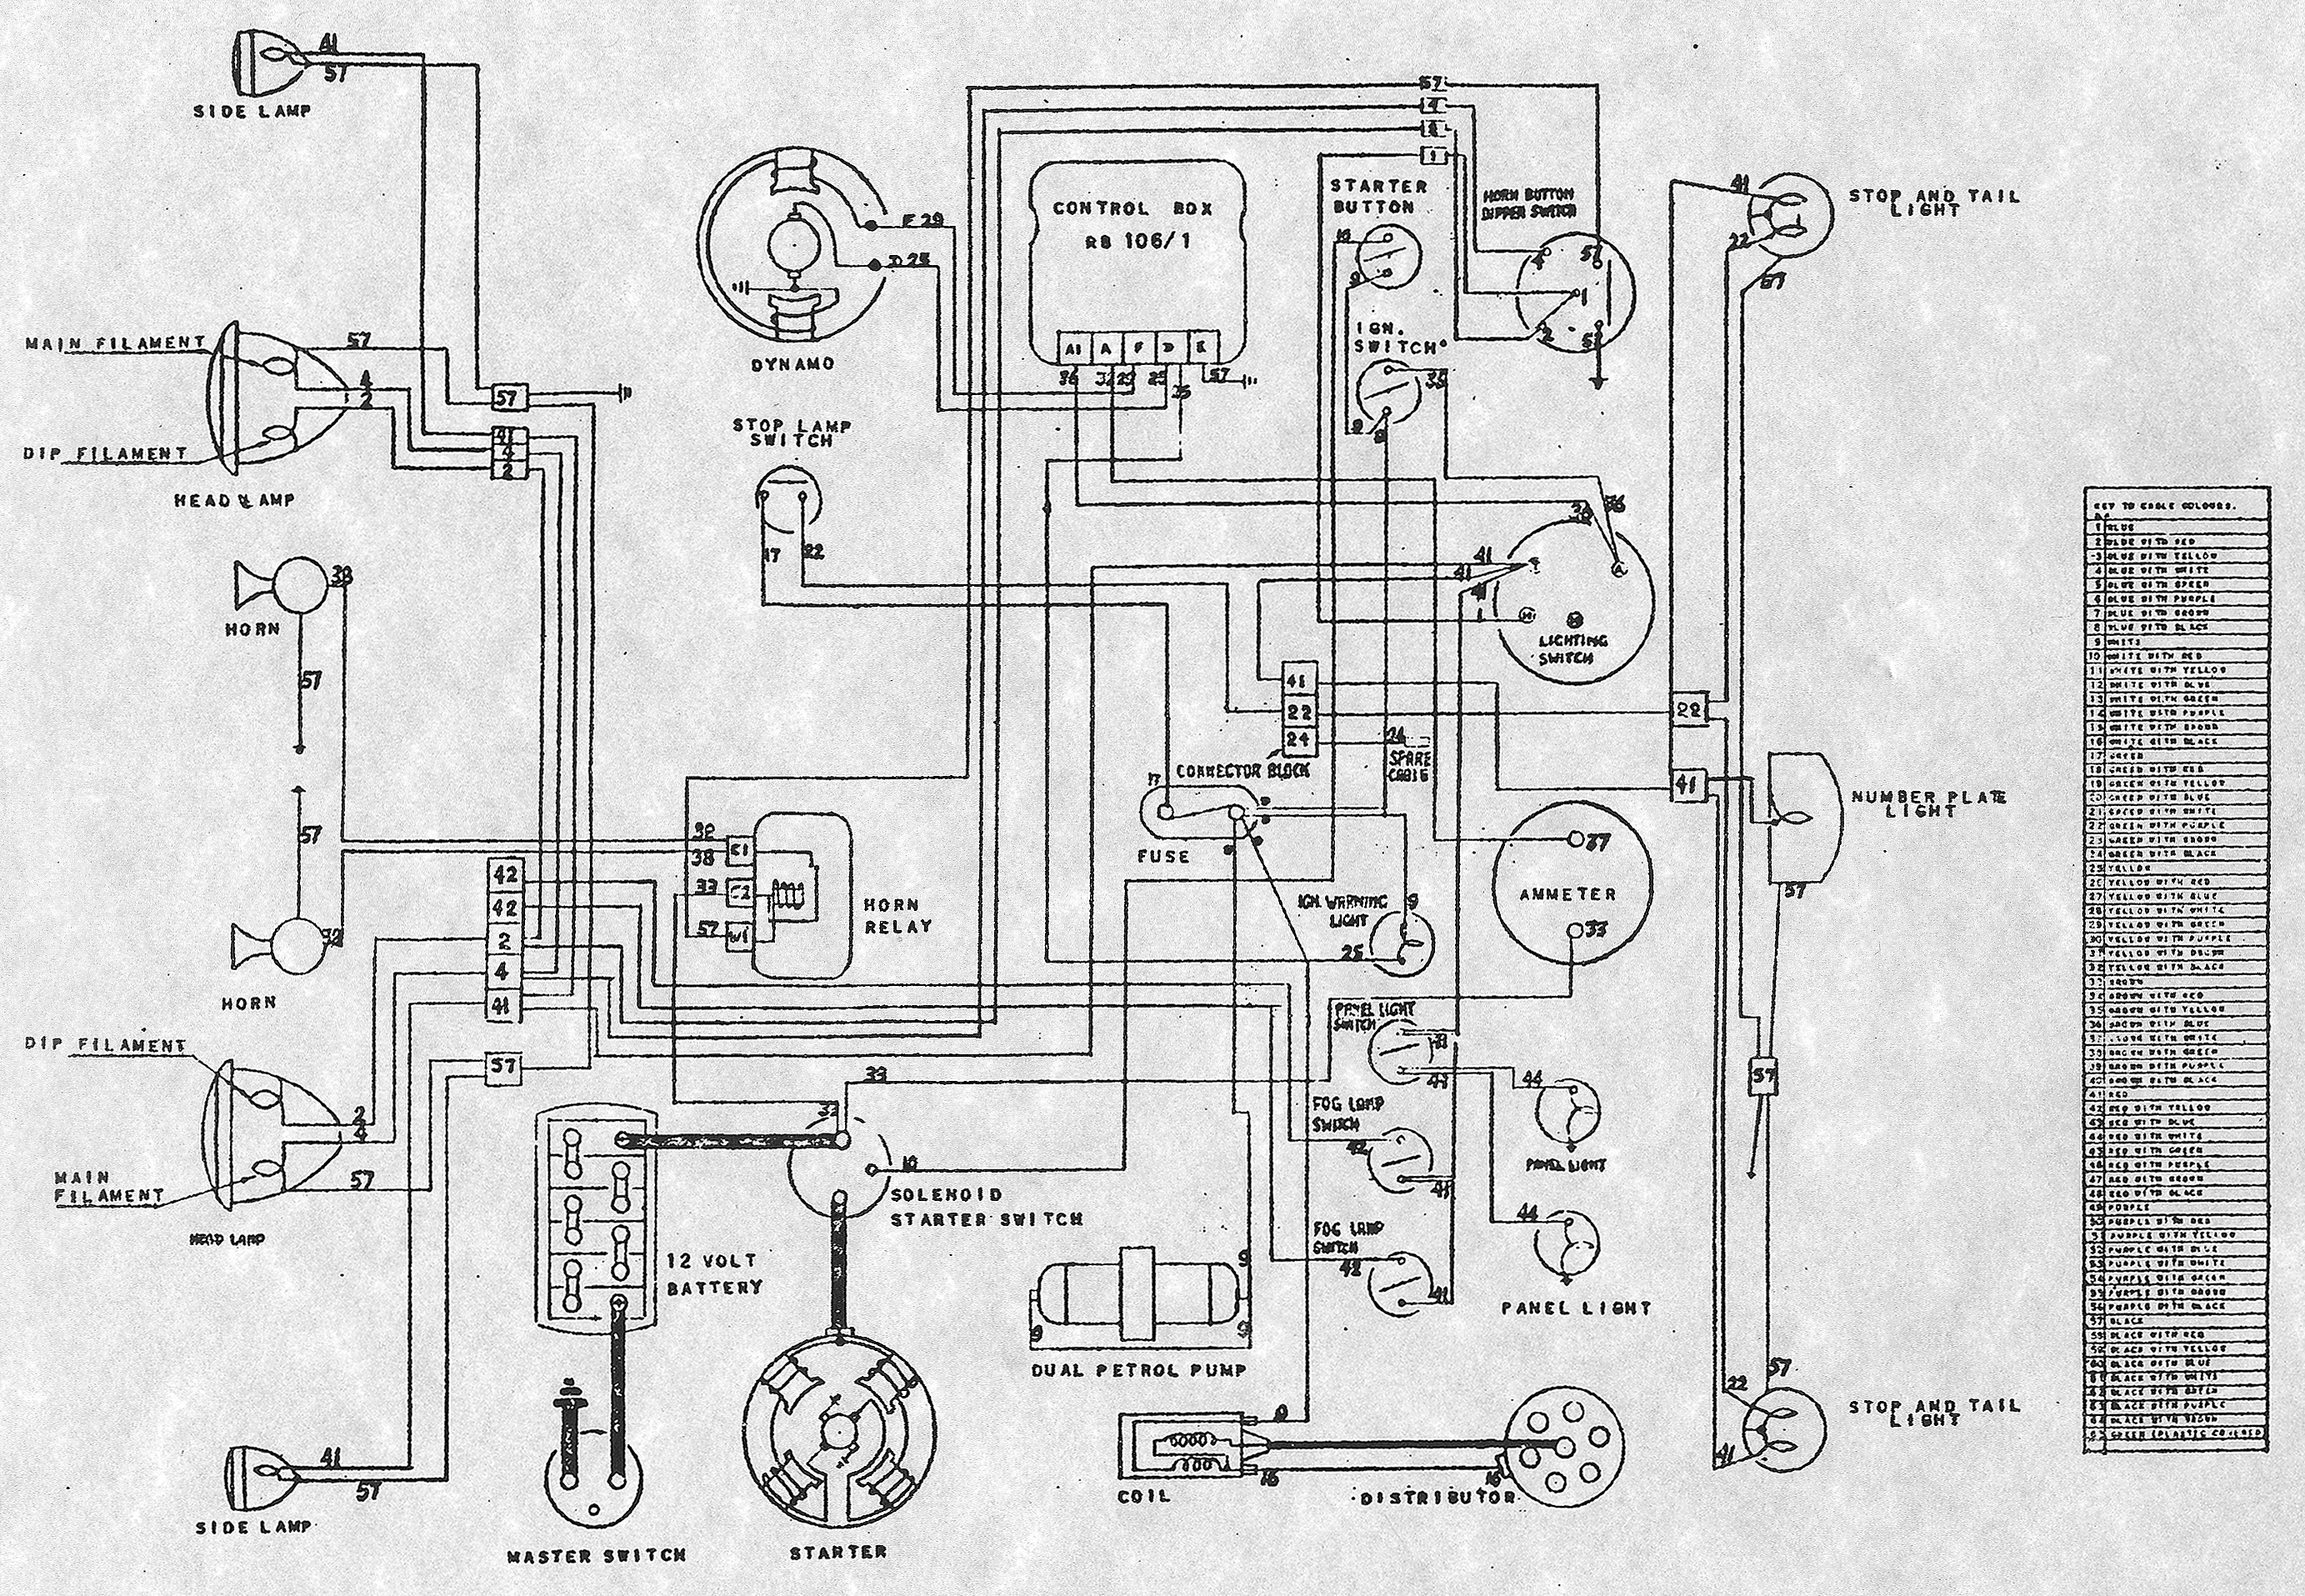 Viewit moreover Ford 2600 Tractor Wiring Diagram also Ford 2000 Tractor Hydraulic Diagram also Flathead drawings electrical furthermore Index. on 1953 ford tractor wiring diagram